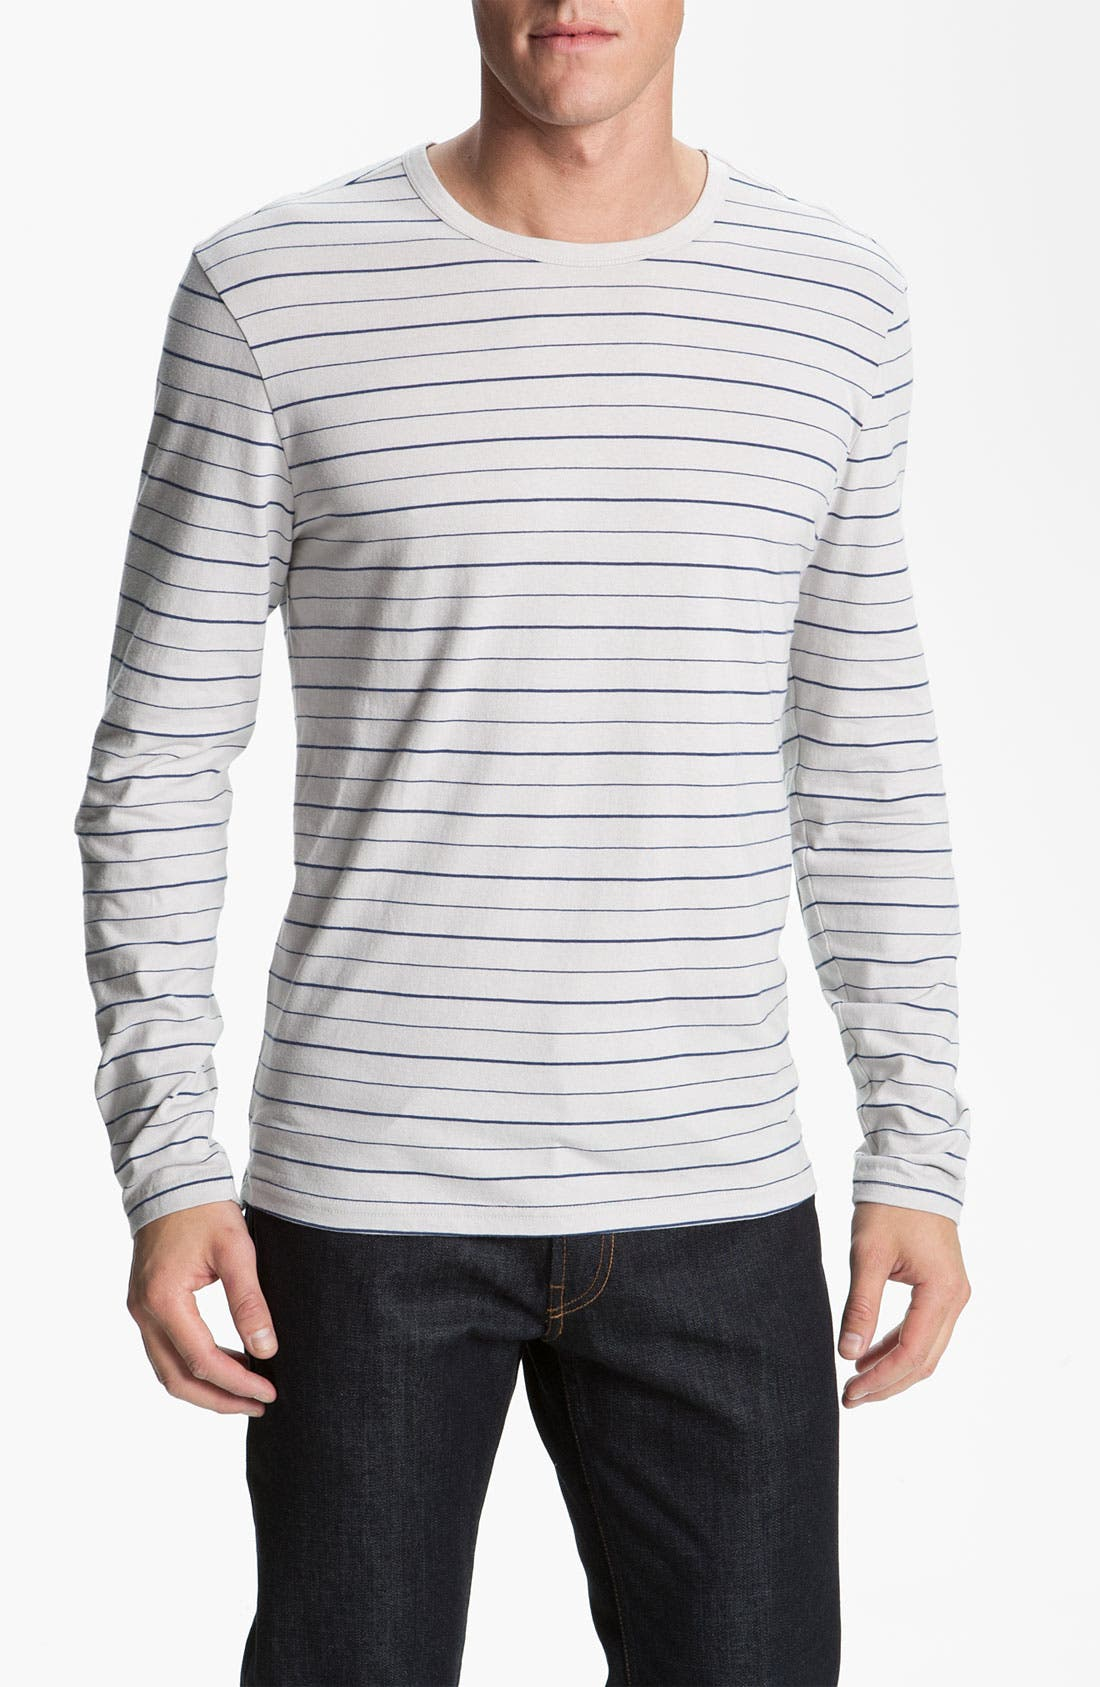 Alternate Image 1 Selected - 1901 Stripe Long Sleeve T-Shirt